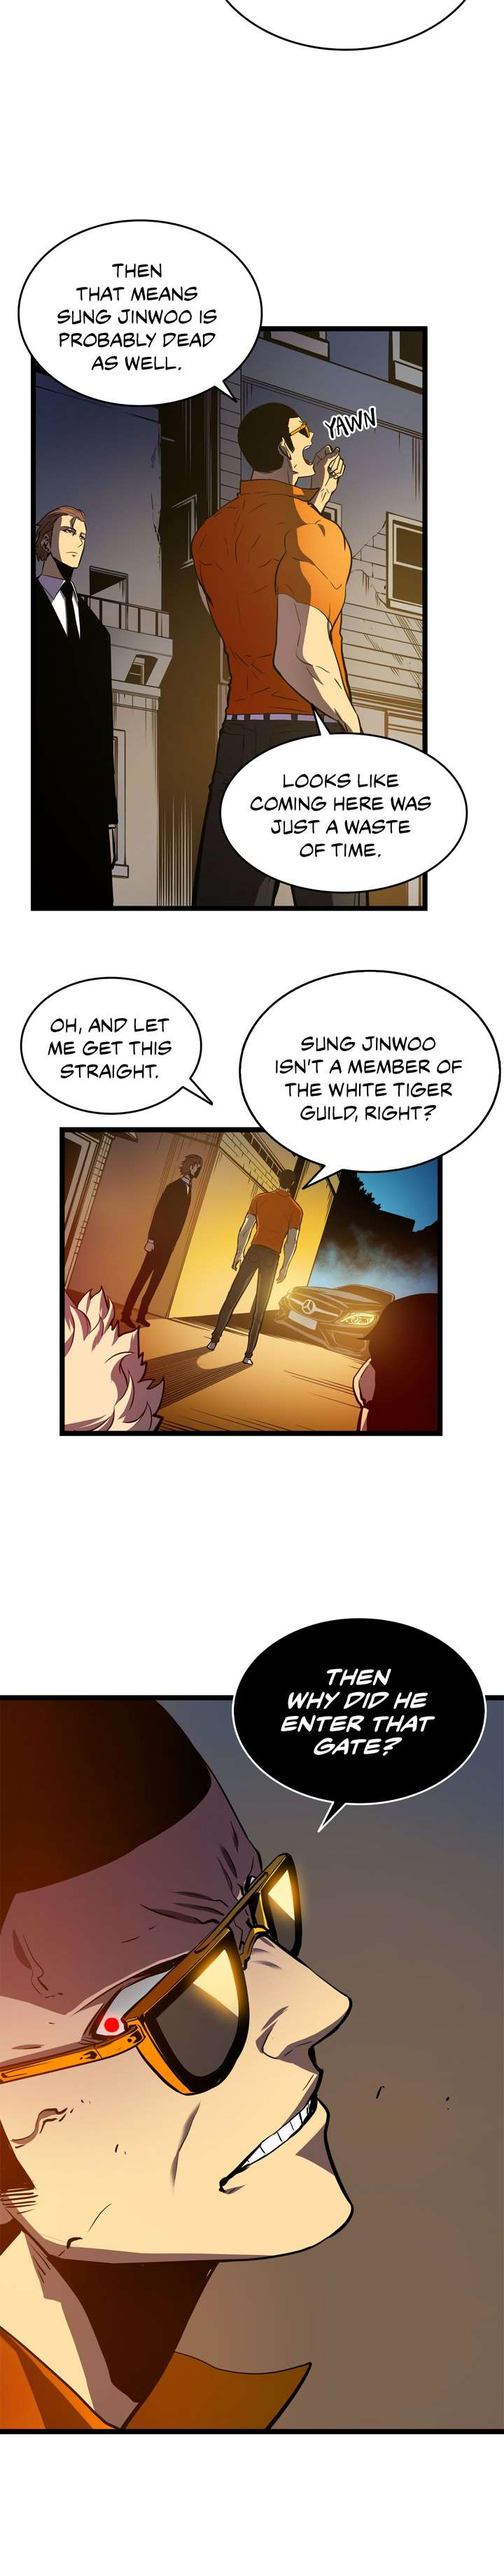 Solo Leveling Chapter 51 Page 26